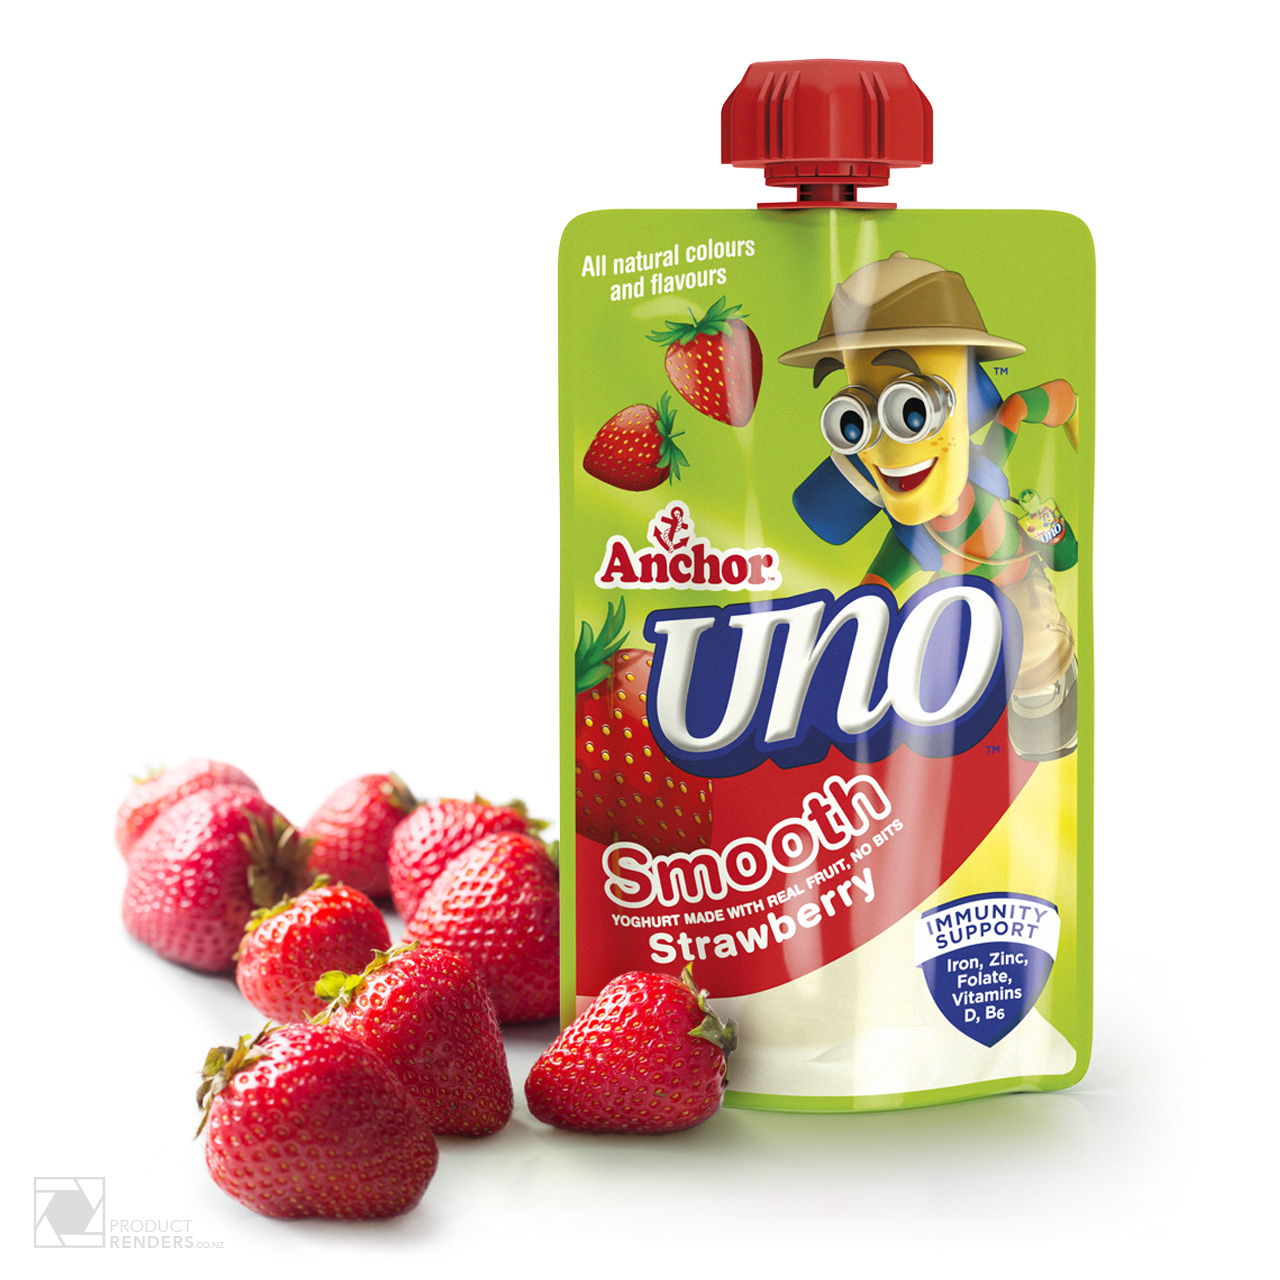 3D render of Anchor Uno's strawberry packaging pouch